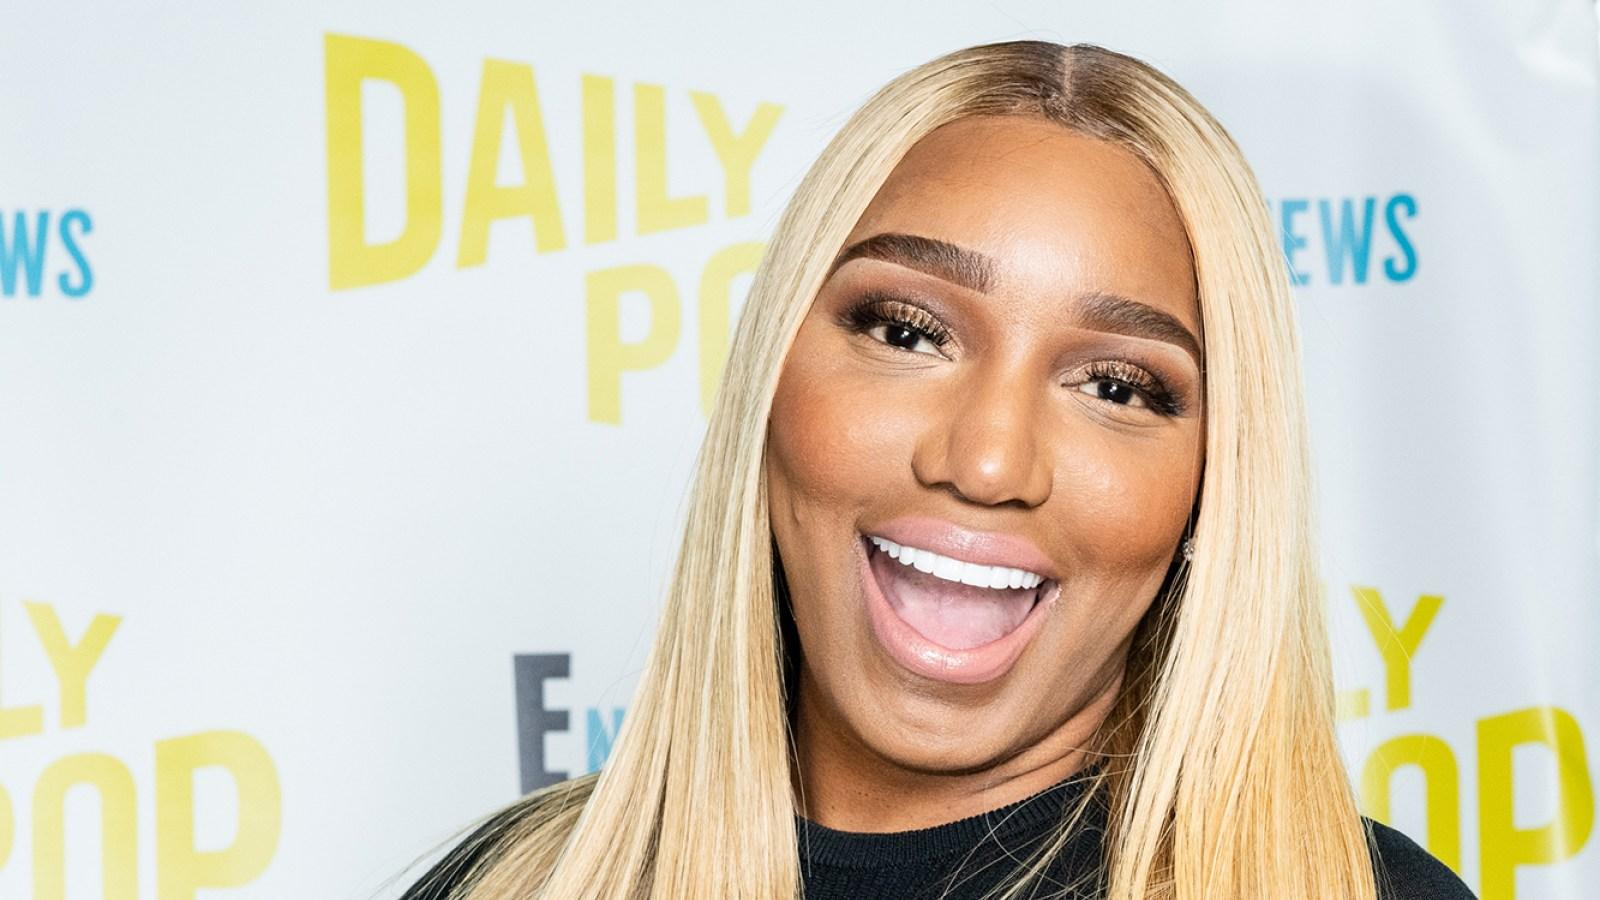 NeNe Leakes Just Told Her Fans She Has Outdone Herself And They Advised Her To Move On From RHOA - See Her Pics And Videos